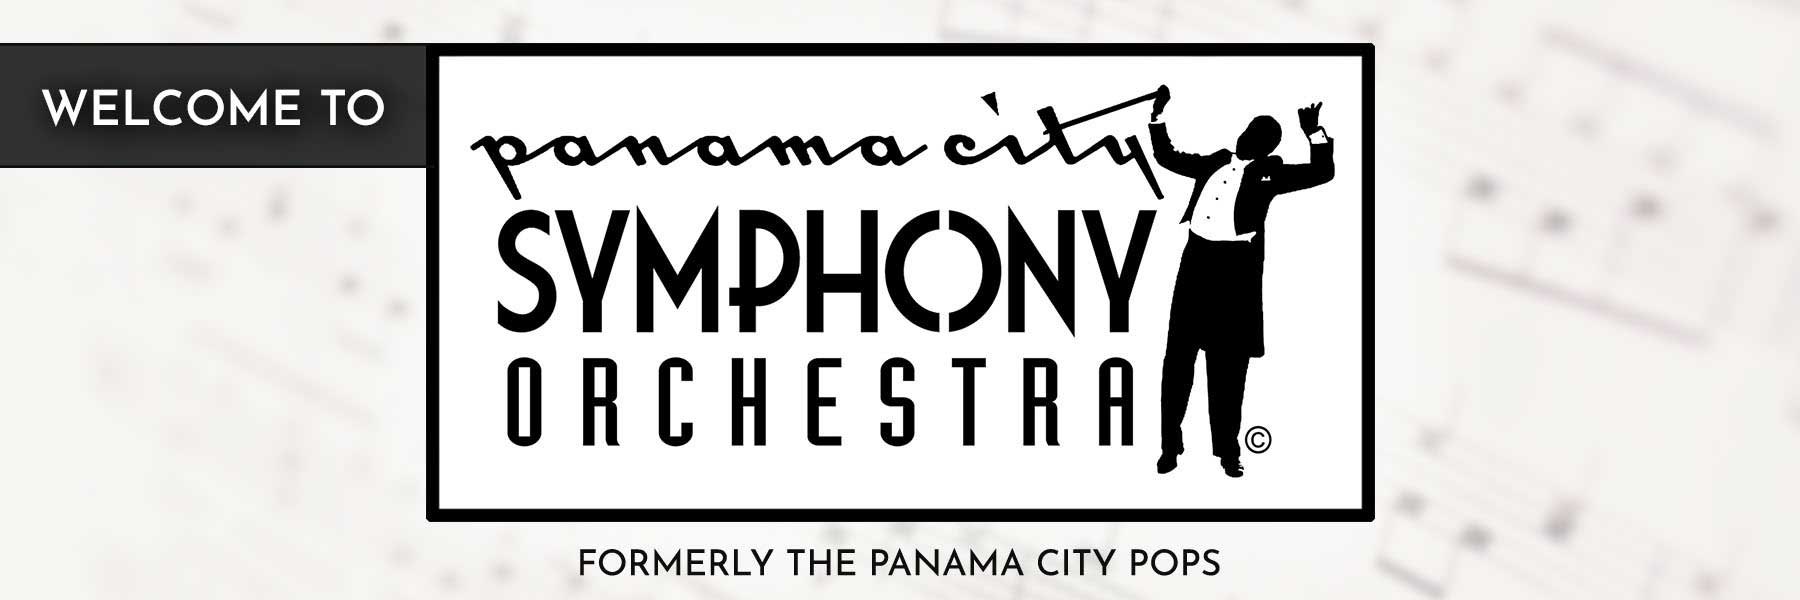 Welcome to Panama City Symphony Orchestra